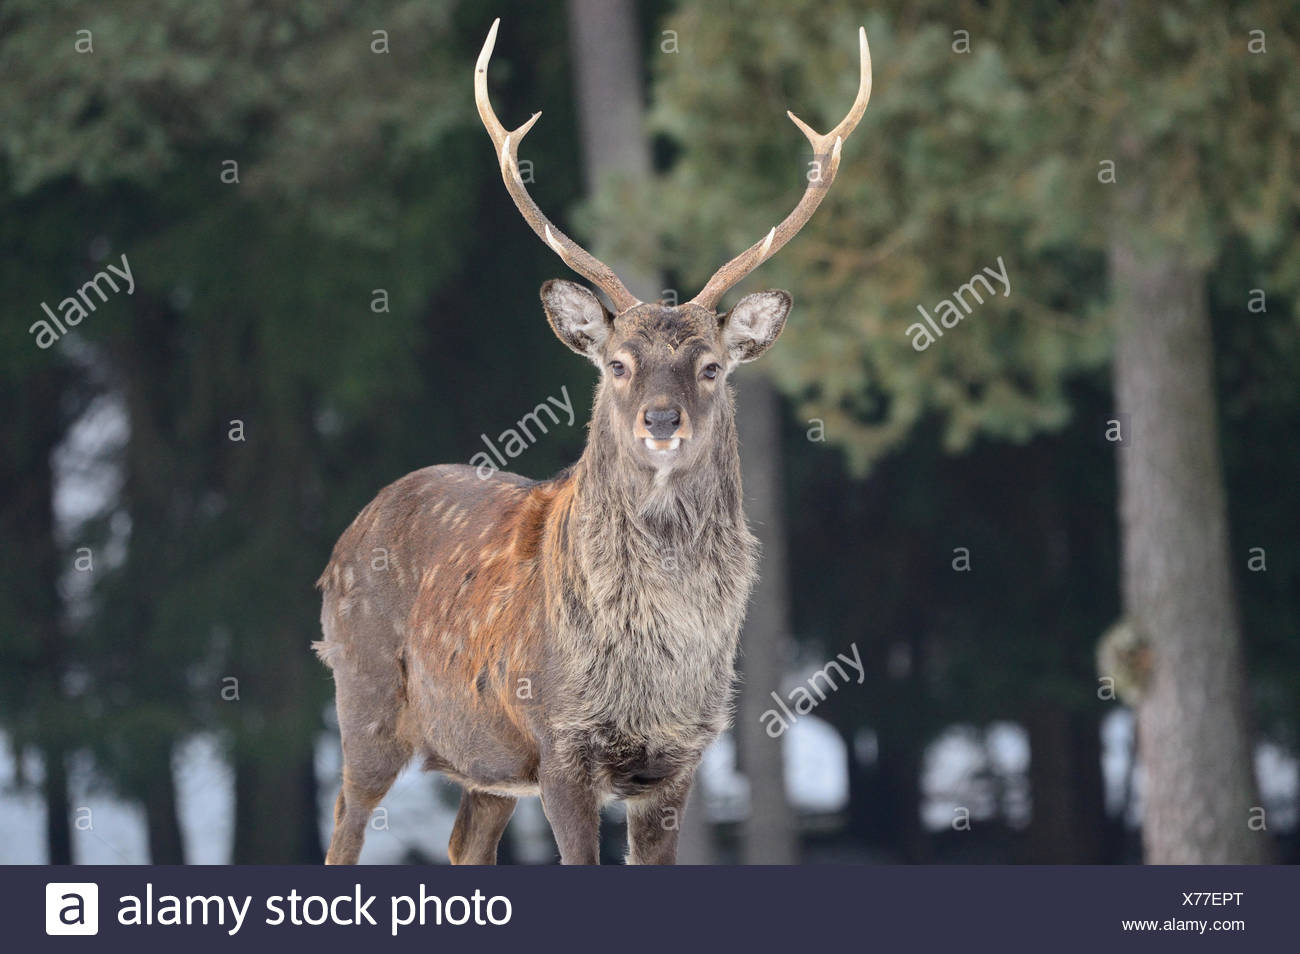 Sika, animal, Tier, winter, Japanese deer, deer, stag, Cervus nippon, deer, stags, animals, wild animals, Asian deer, rutting sea - Stock Image